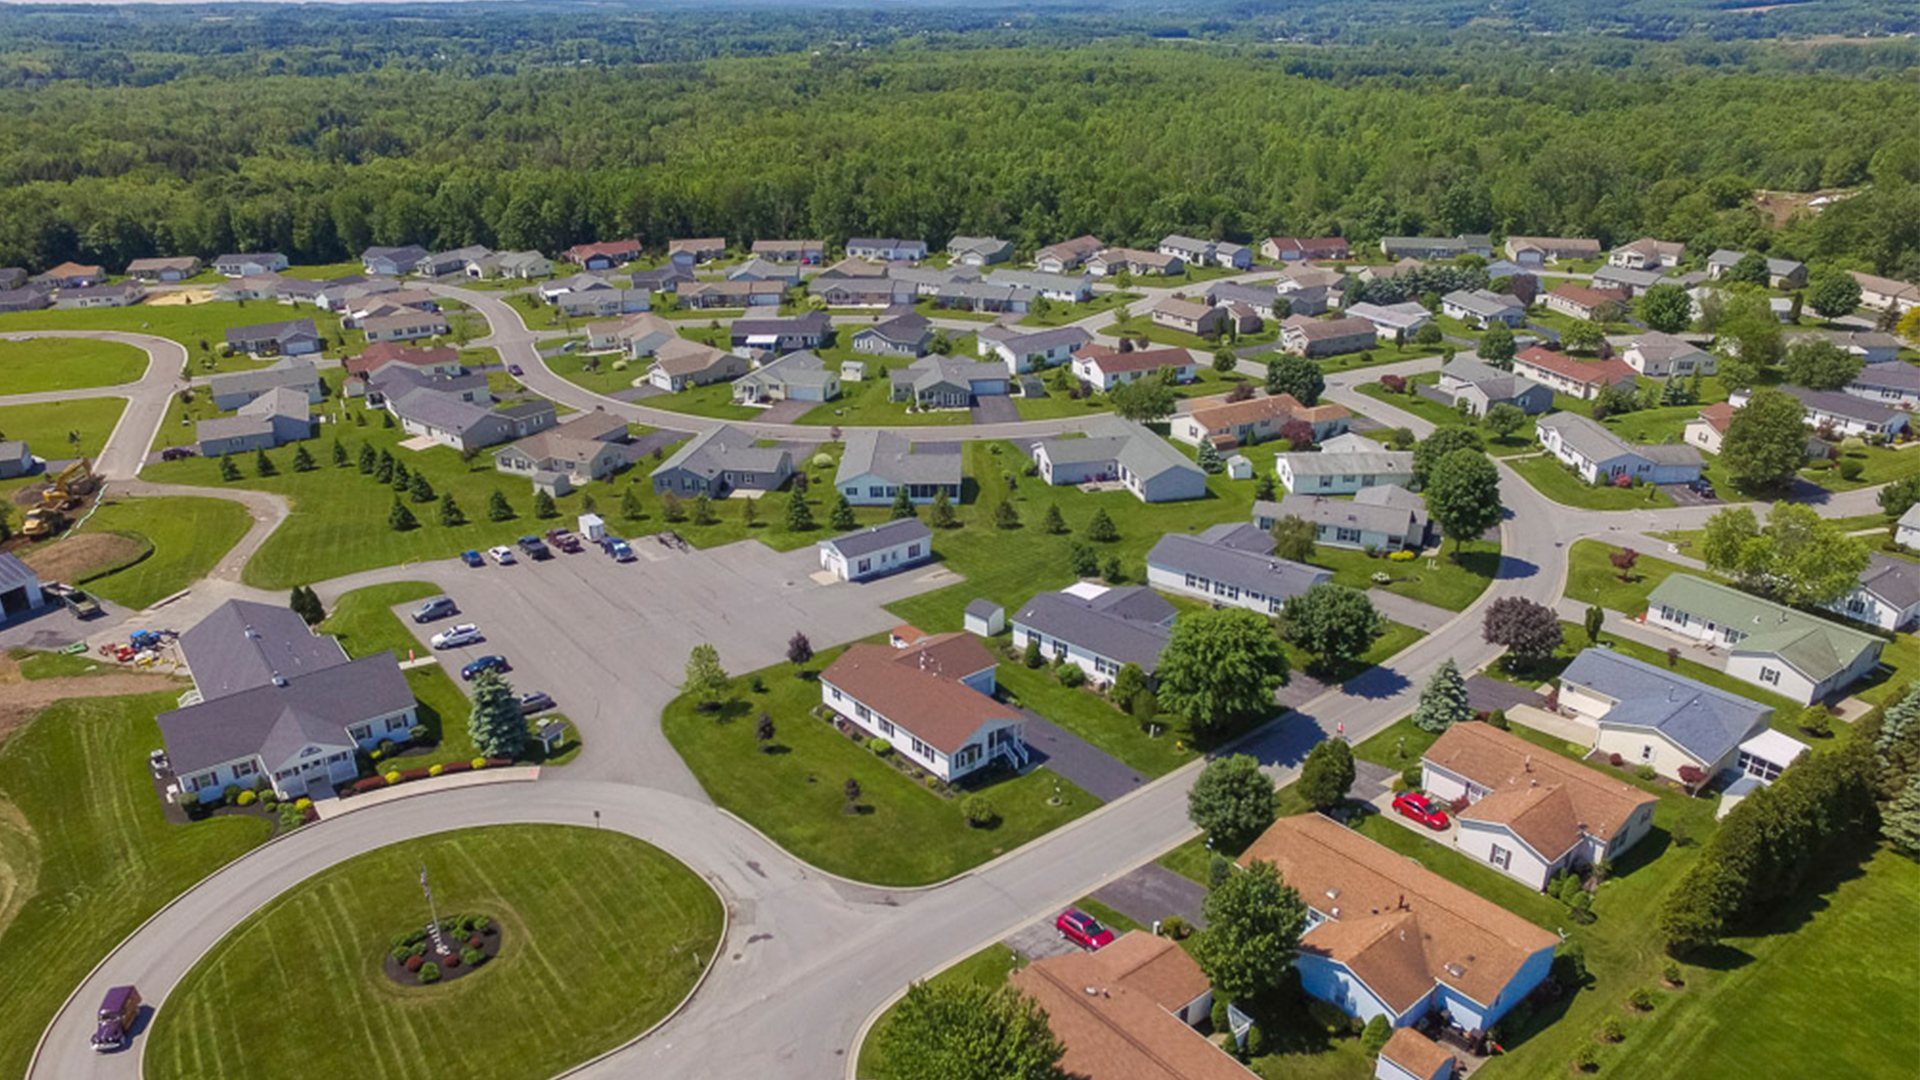 Cherrywood 55+ Manufactured Homes Community Aerial View in Clinton, NY